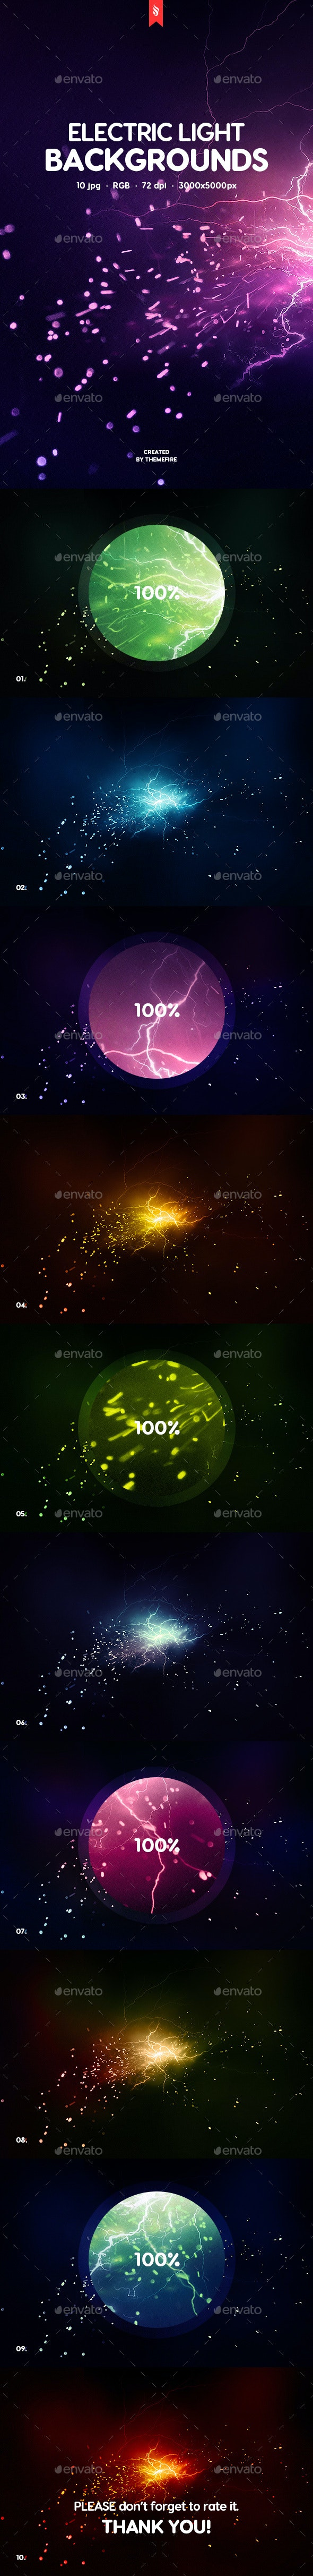 Electric Light Backgrounds - Backgrounds Graphics